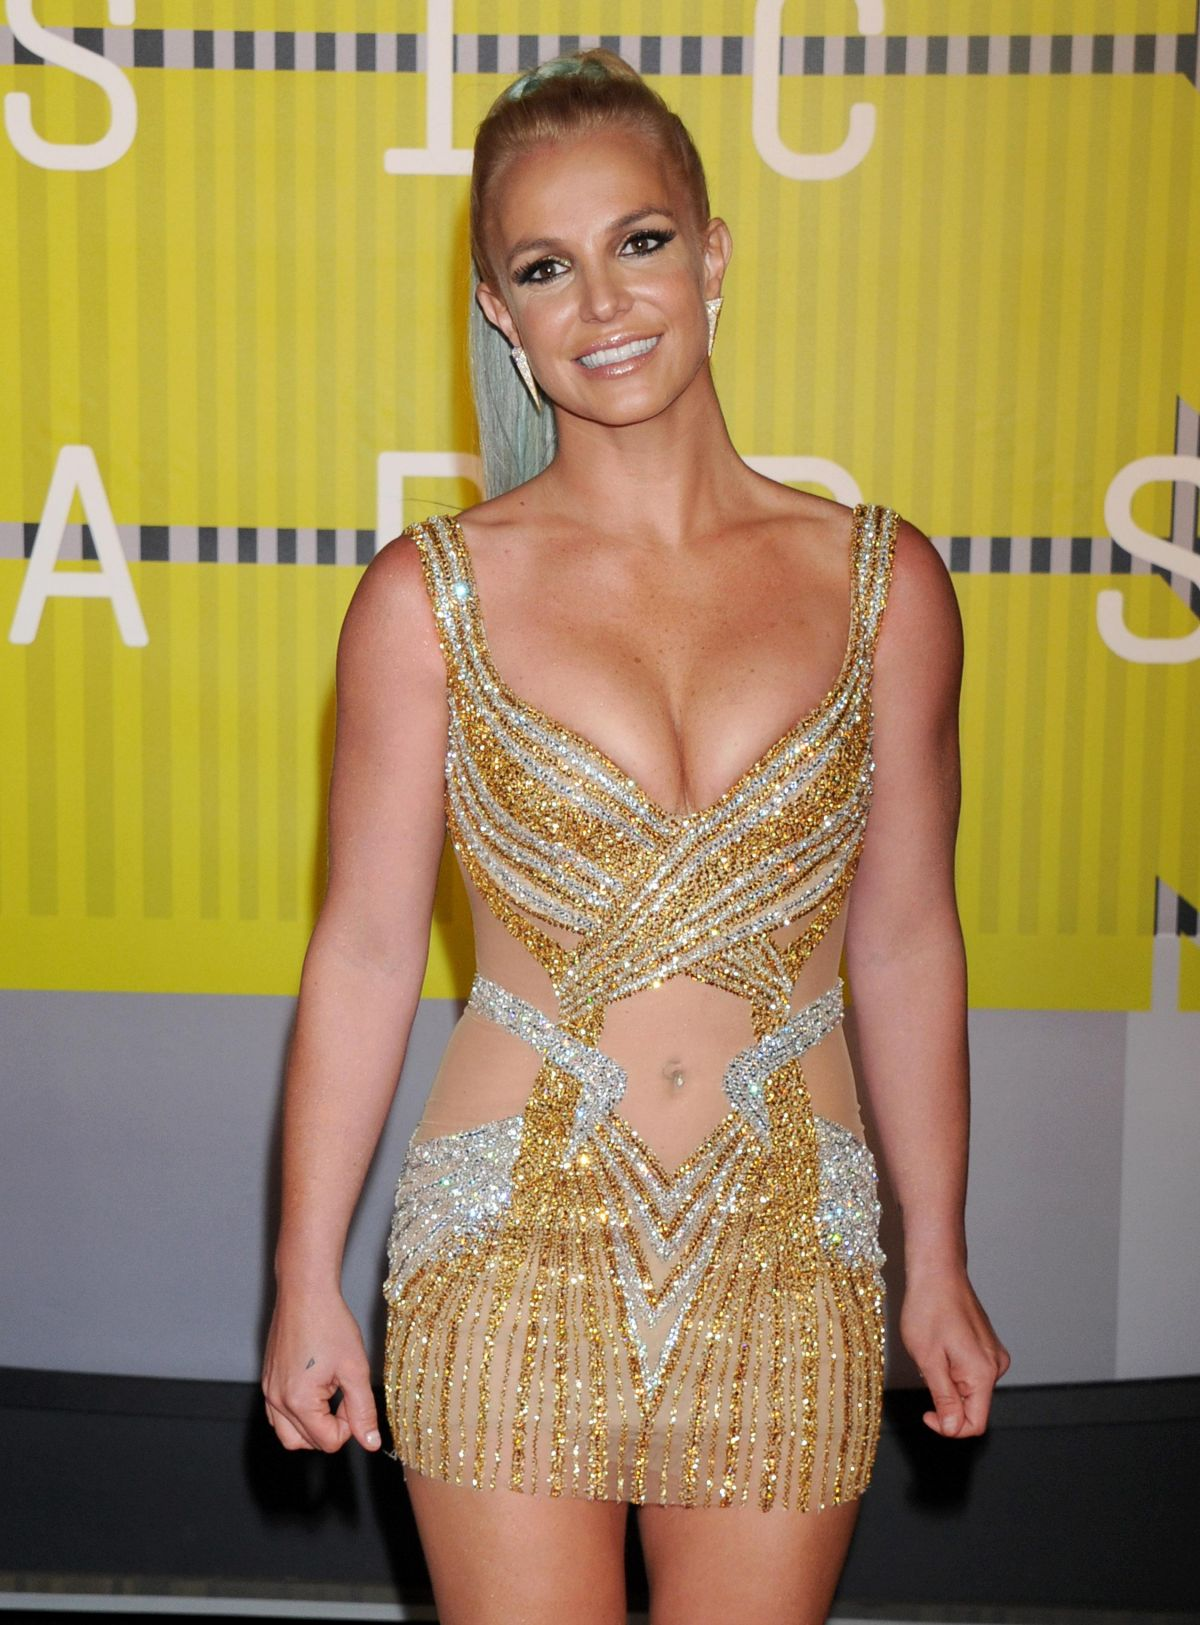 Britney Spears, Larry Rudolph, Baby One More Time, American singer, American songwriter, Britney Spears manager, Pop singer, Hollywood news, Entertainment news